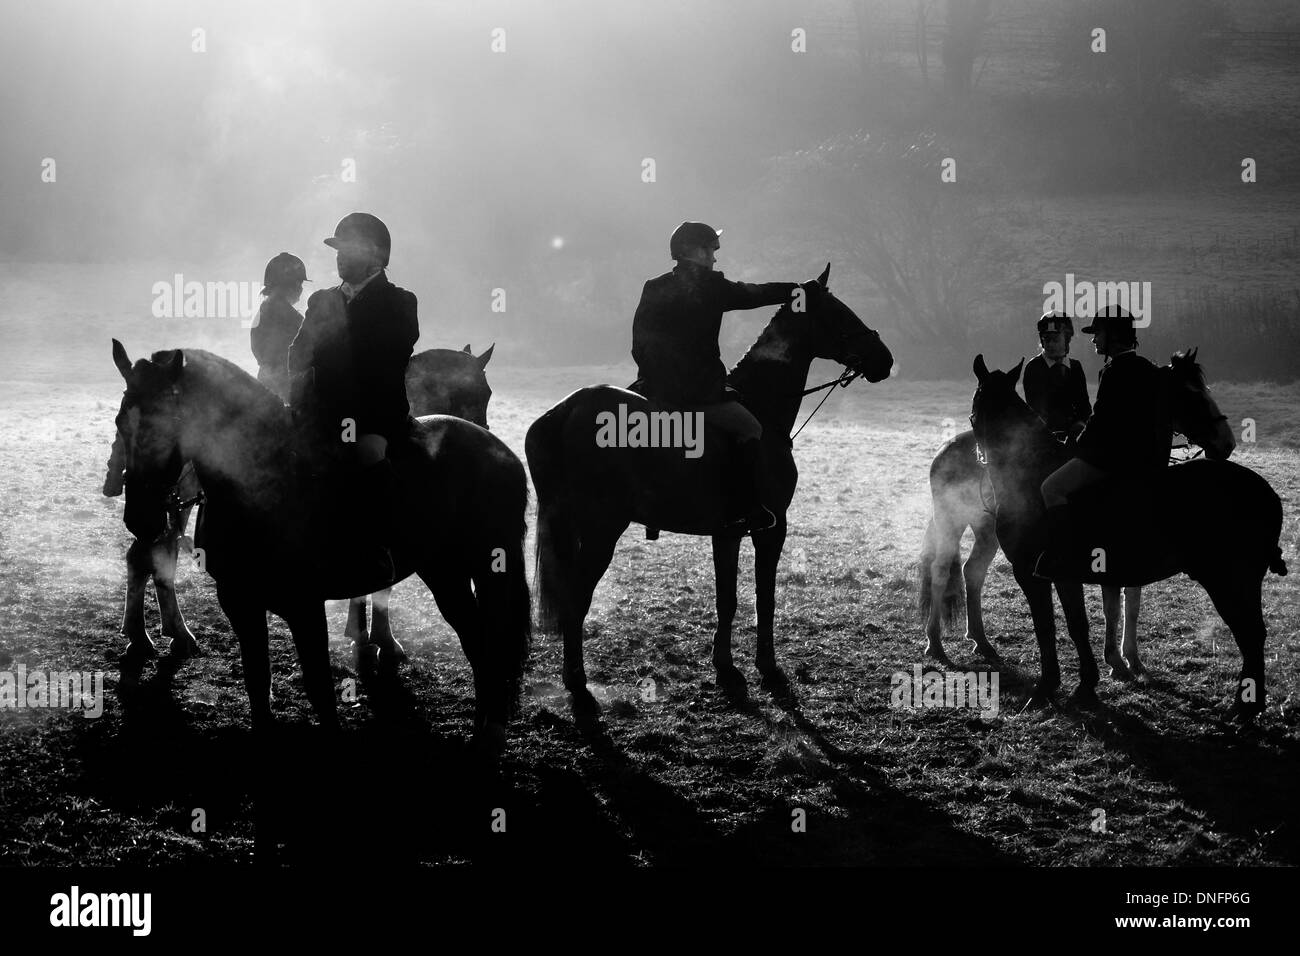 Wentbridge, West Yorkshire, UK. 26th Dec, 2013. Memebers of the The Badsworth & Bramham Moor club gather prior to the annual Boxing day meet in the village of Wentbridge, West Yorkshire Credit:  chris mcloughlin/Alamy Live News - Stock Image